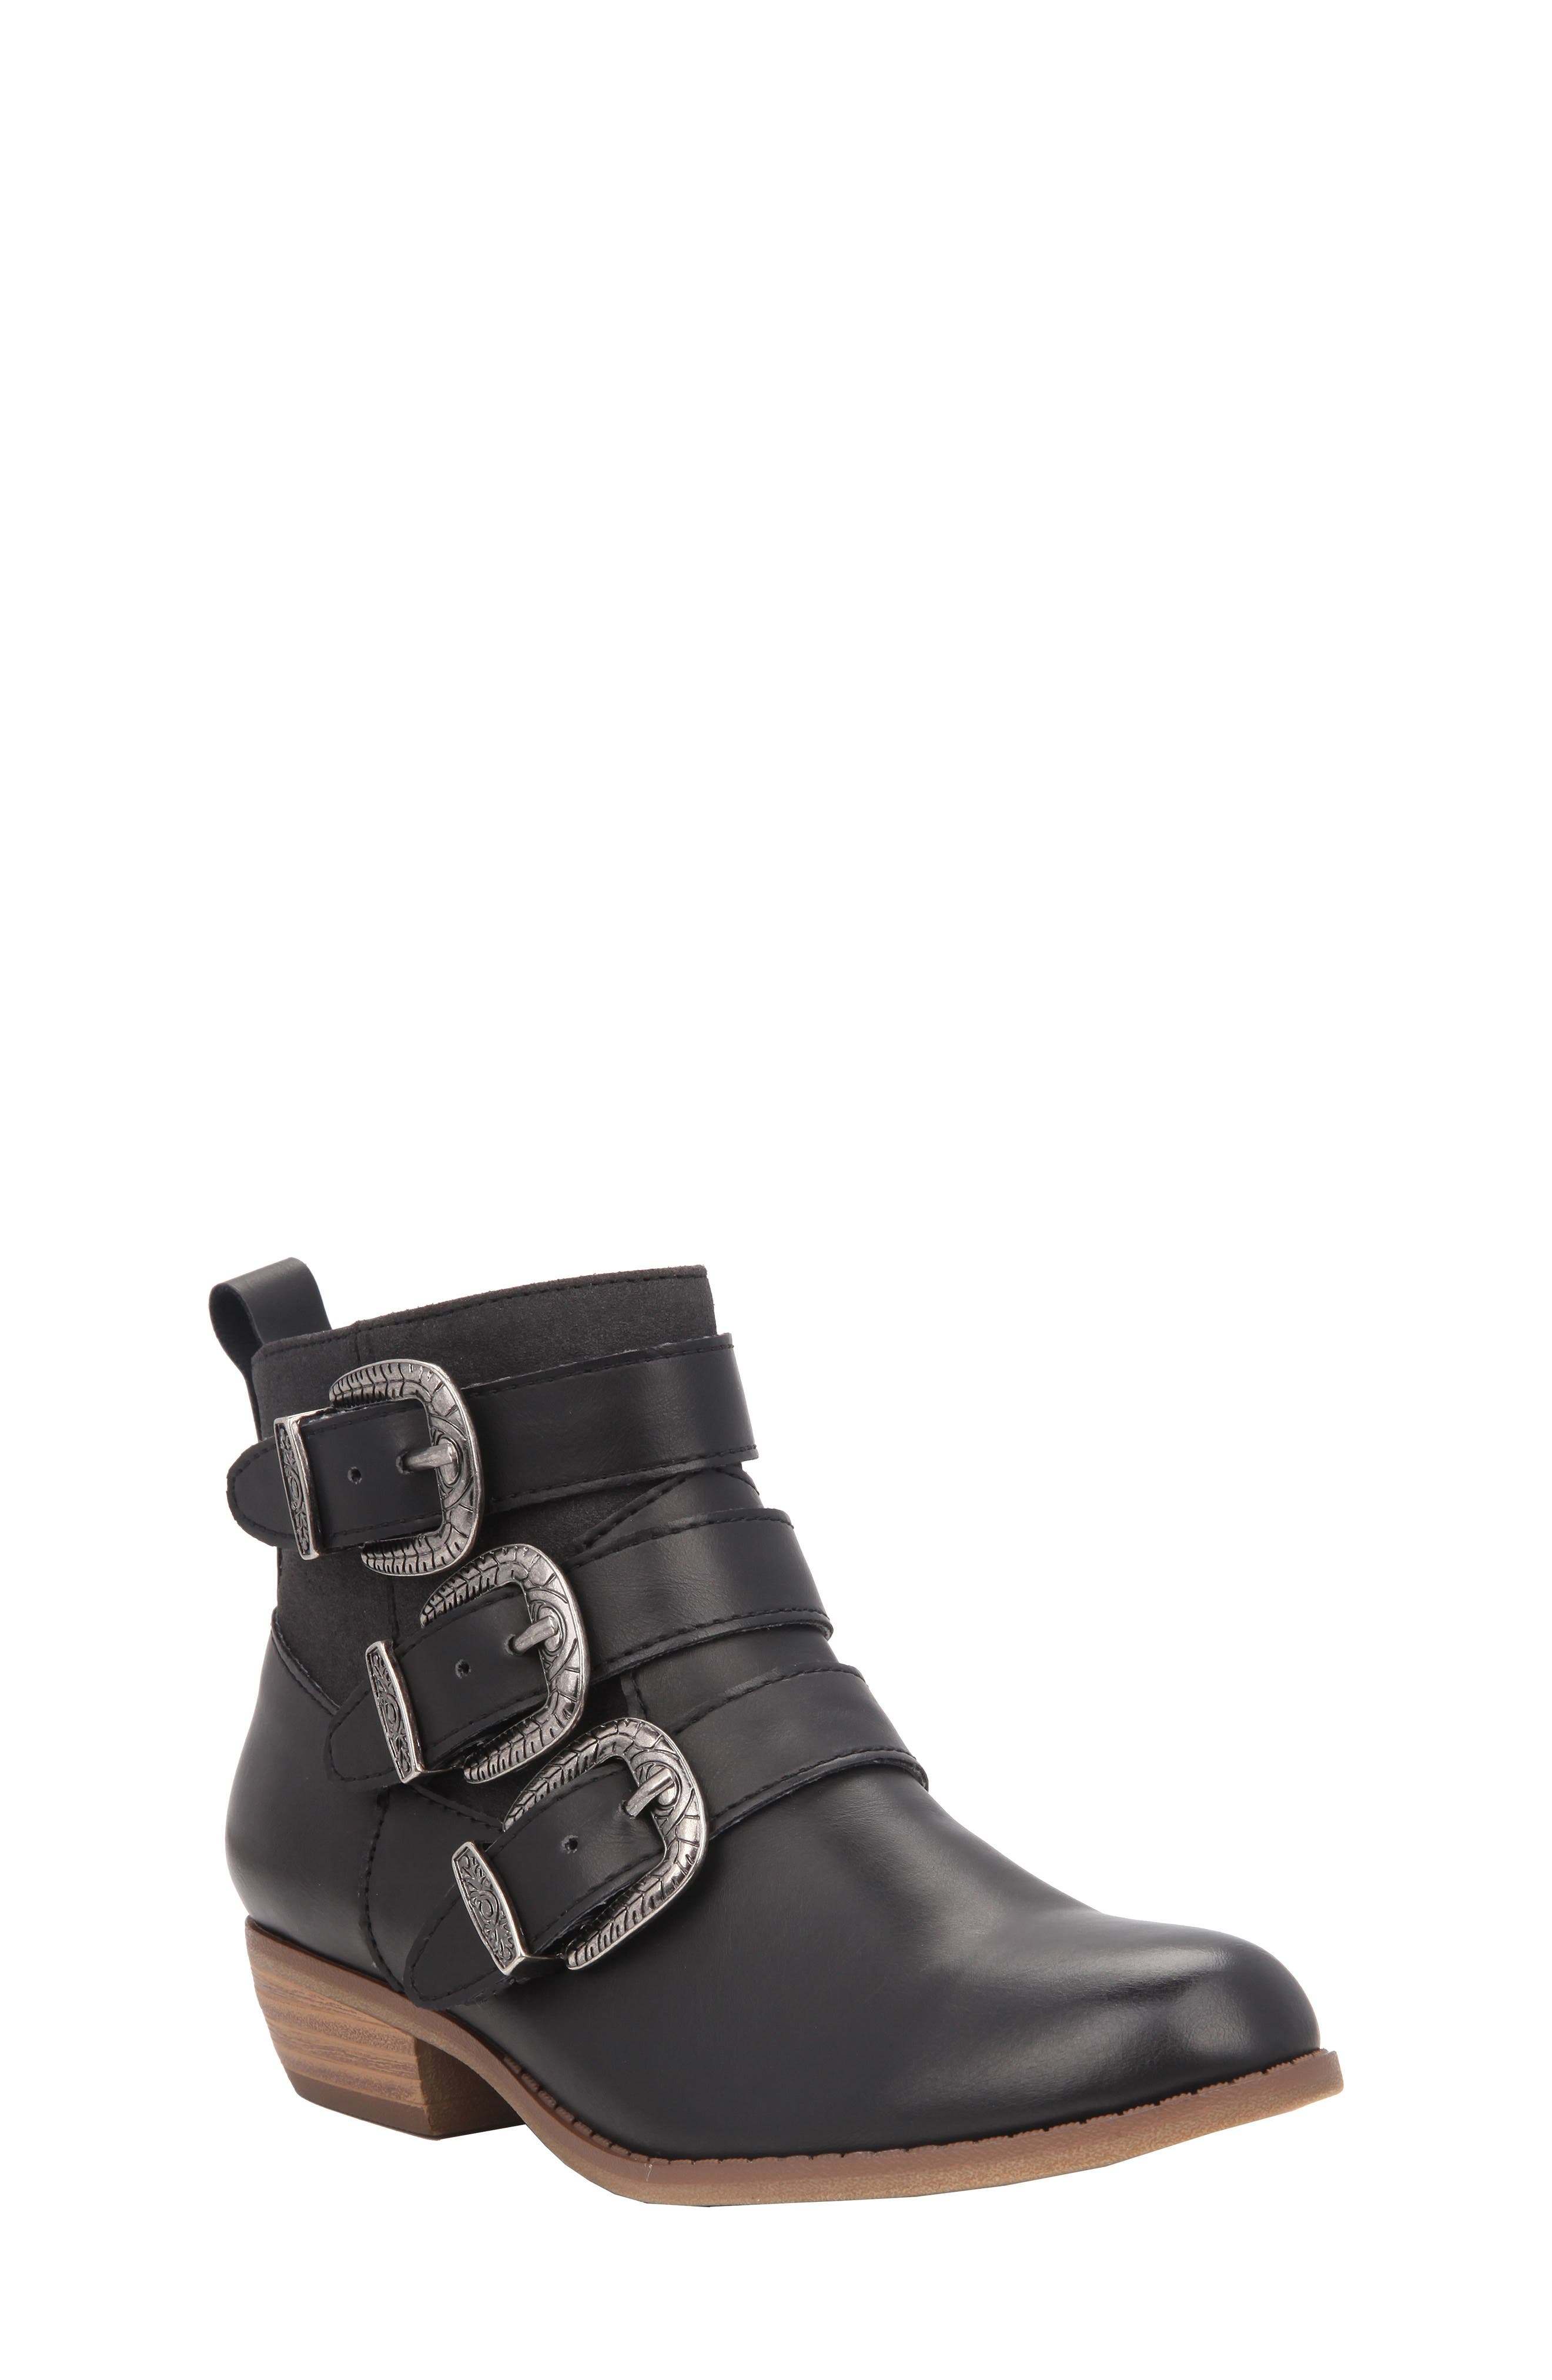 Main Image - Nina Carolina Buckle Strap Bootie (Toddler, Little Kid & Big Kid)